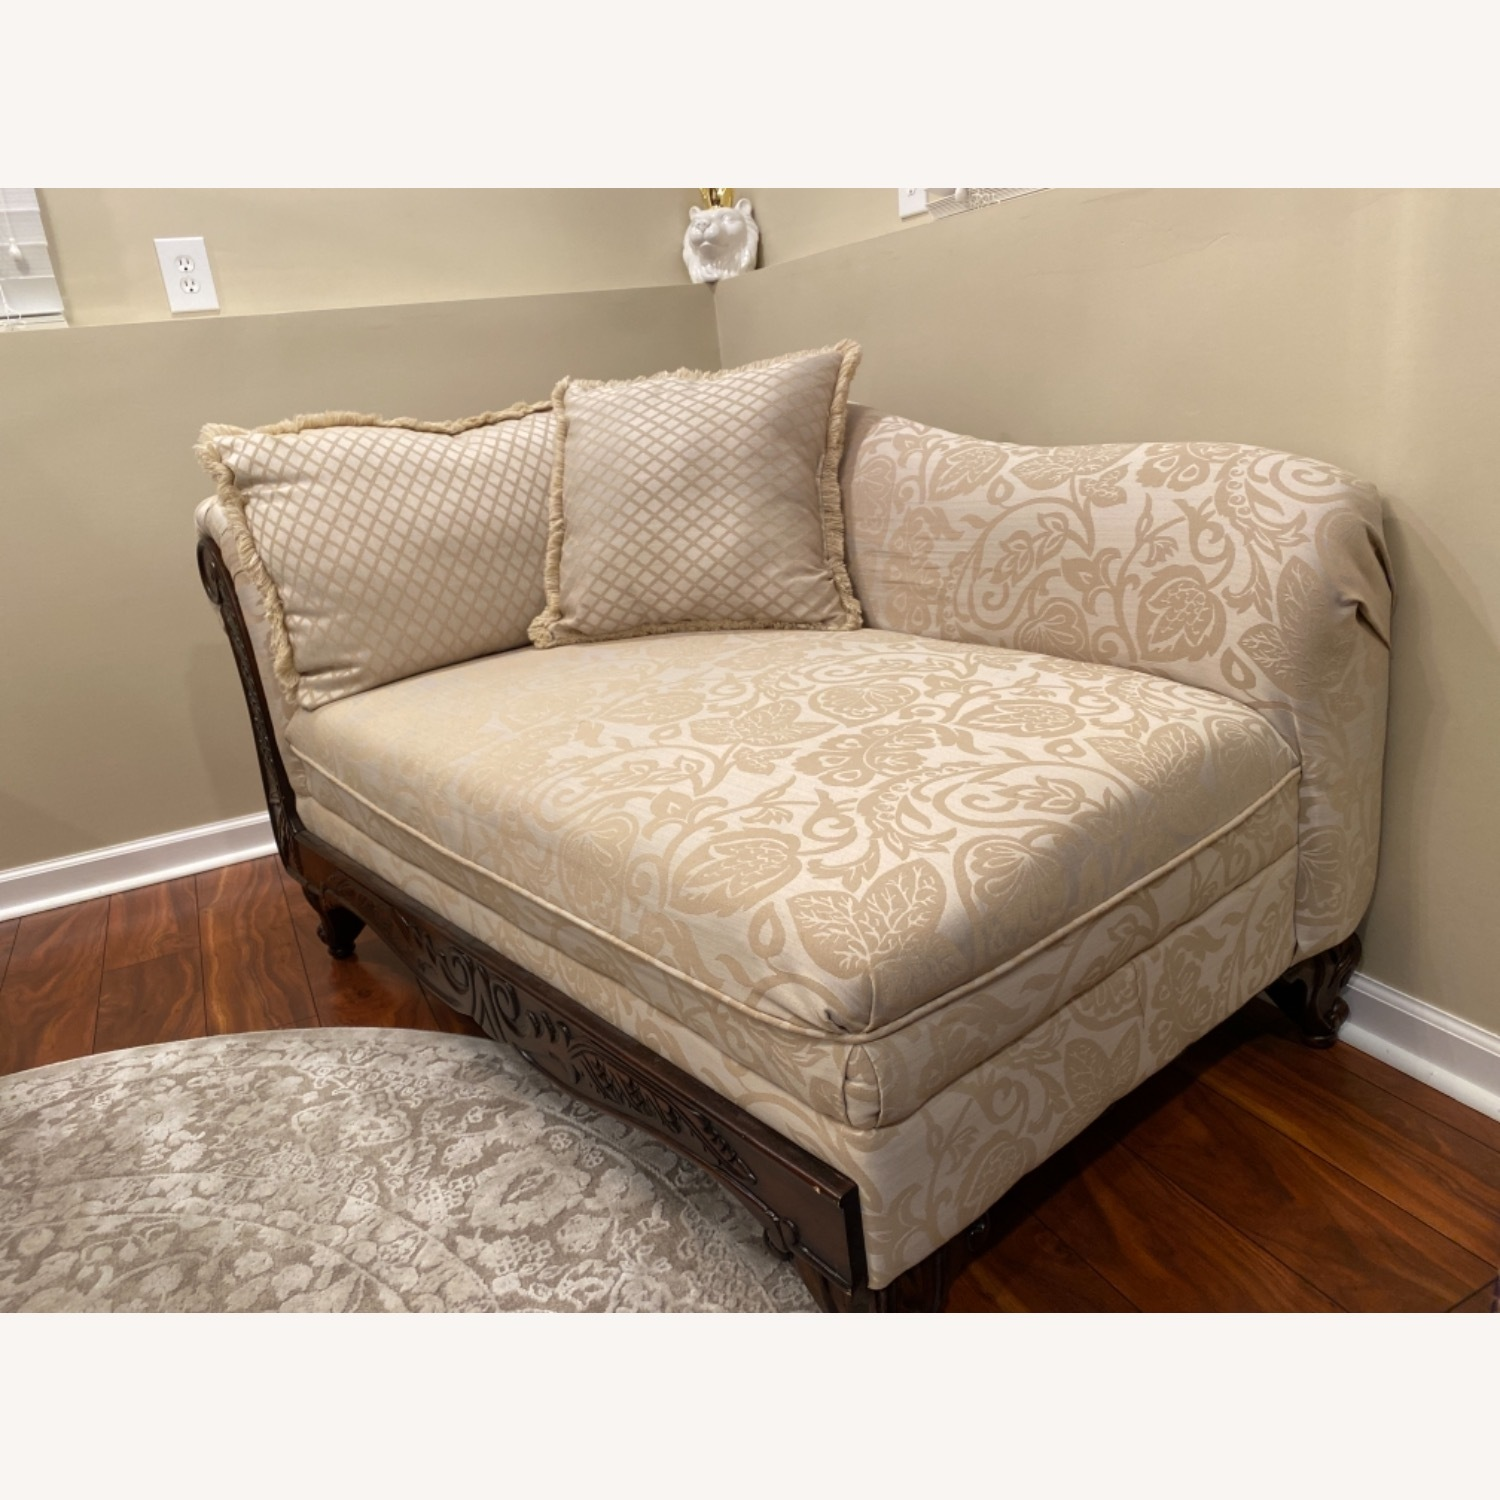 Broyhill Beige/Off White Chaise - image-2